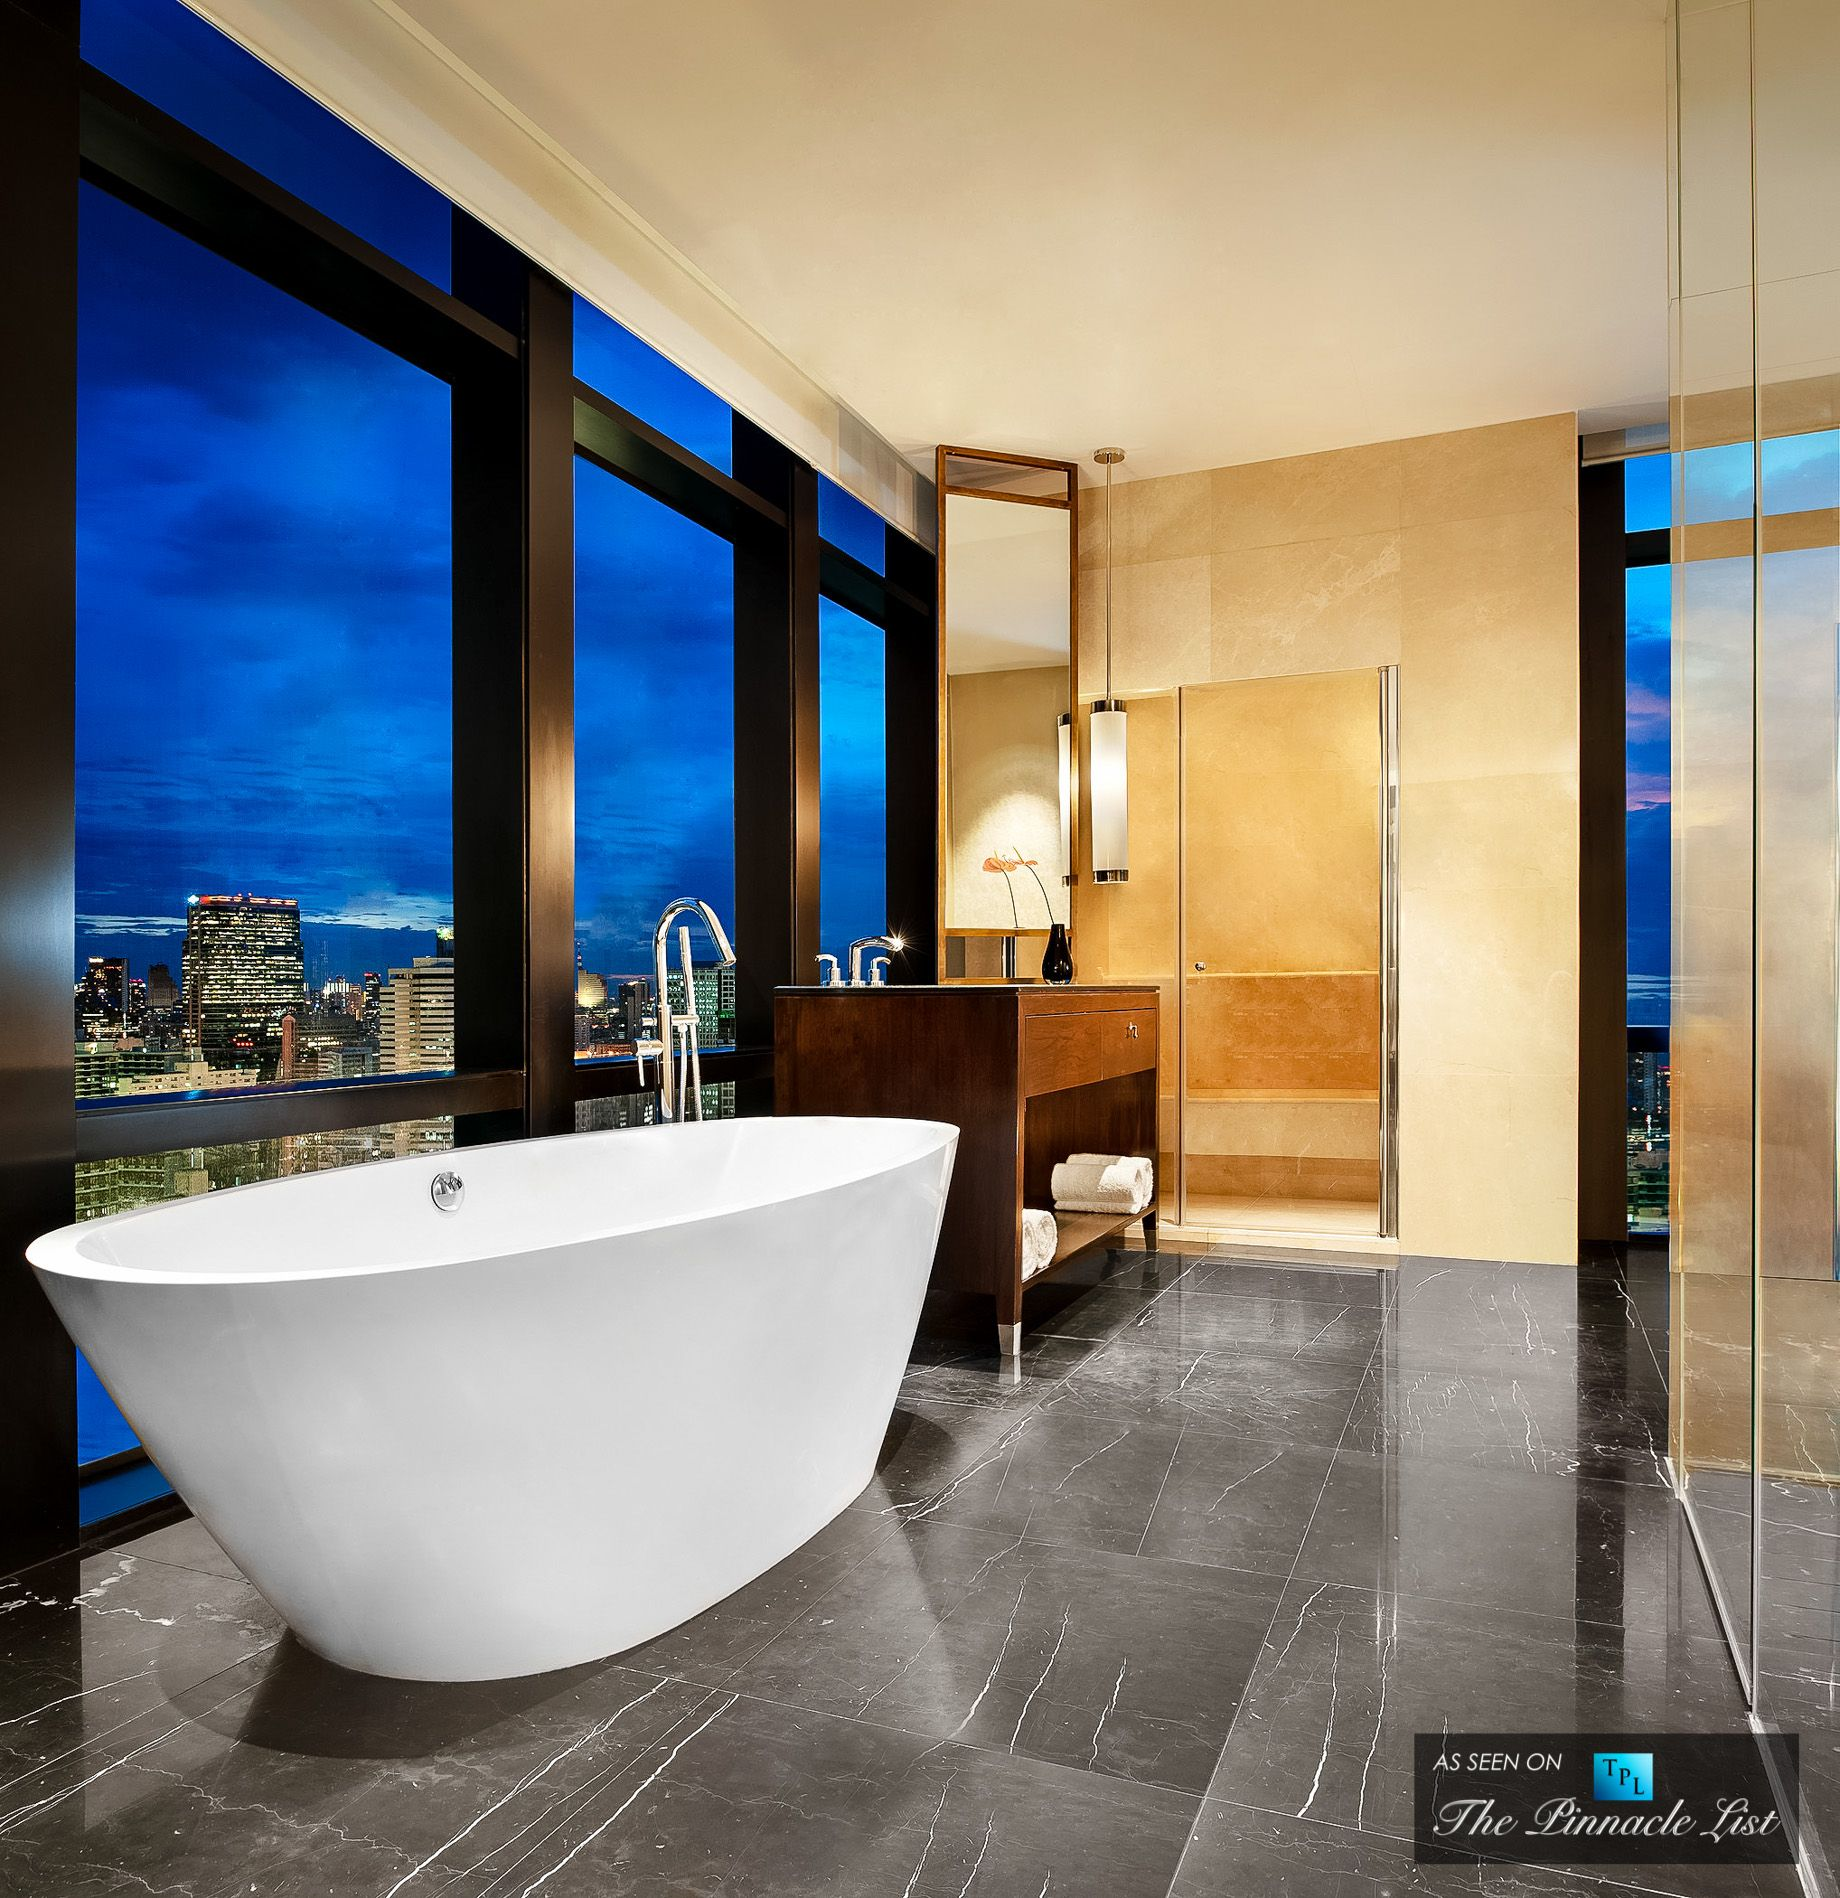 Bathrooms In Luxury Hotels  Google Search  Master Bathroom Unique Luxury Hotel Bathroom Design Inspiration